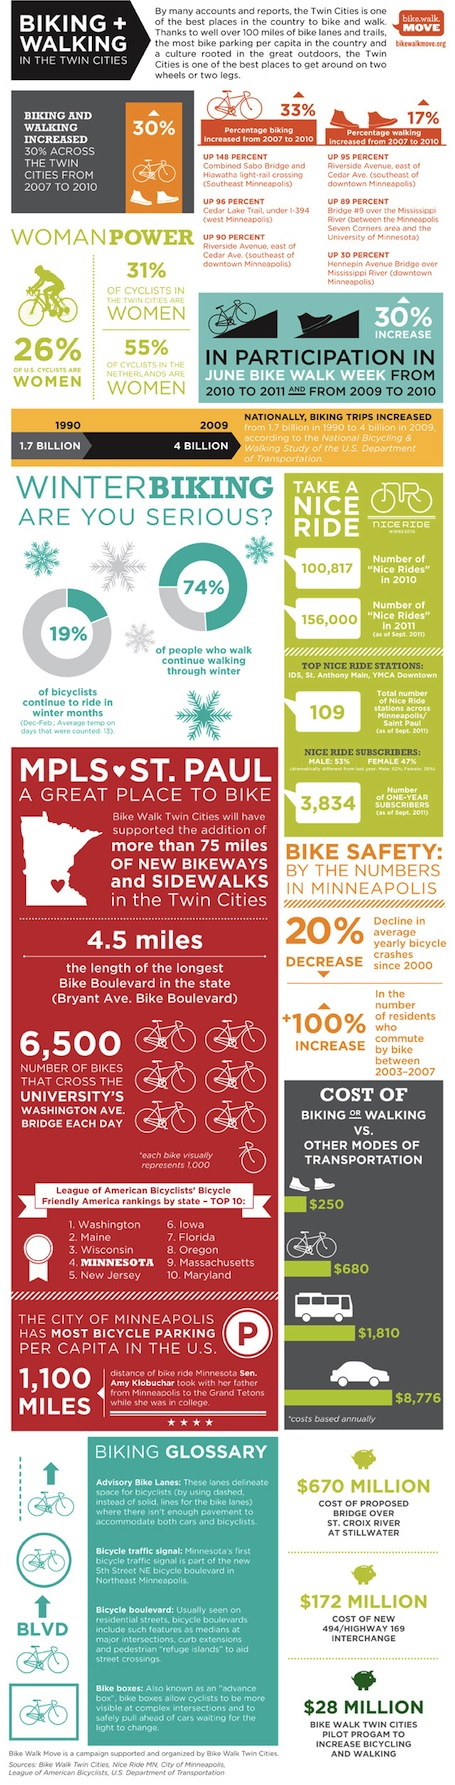 twin-cities-biking-walking